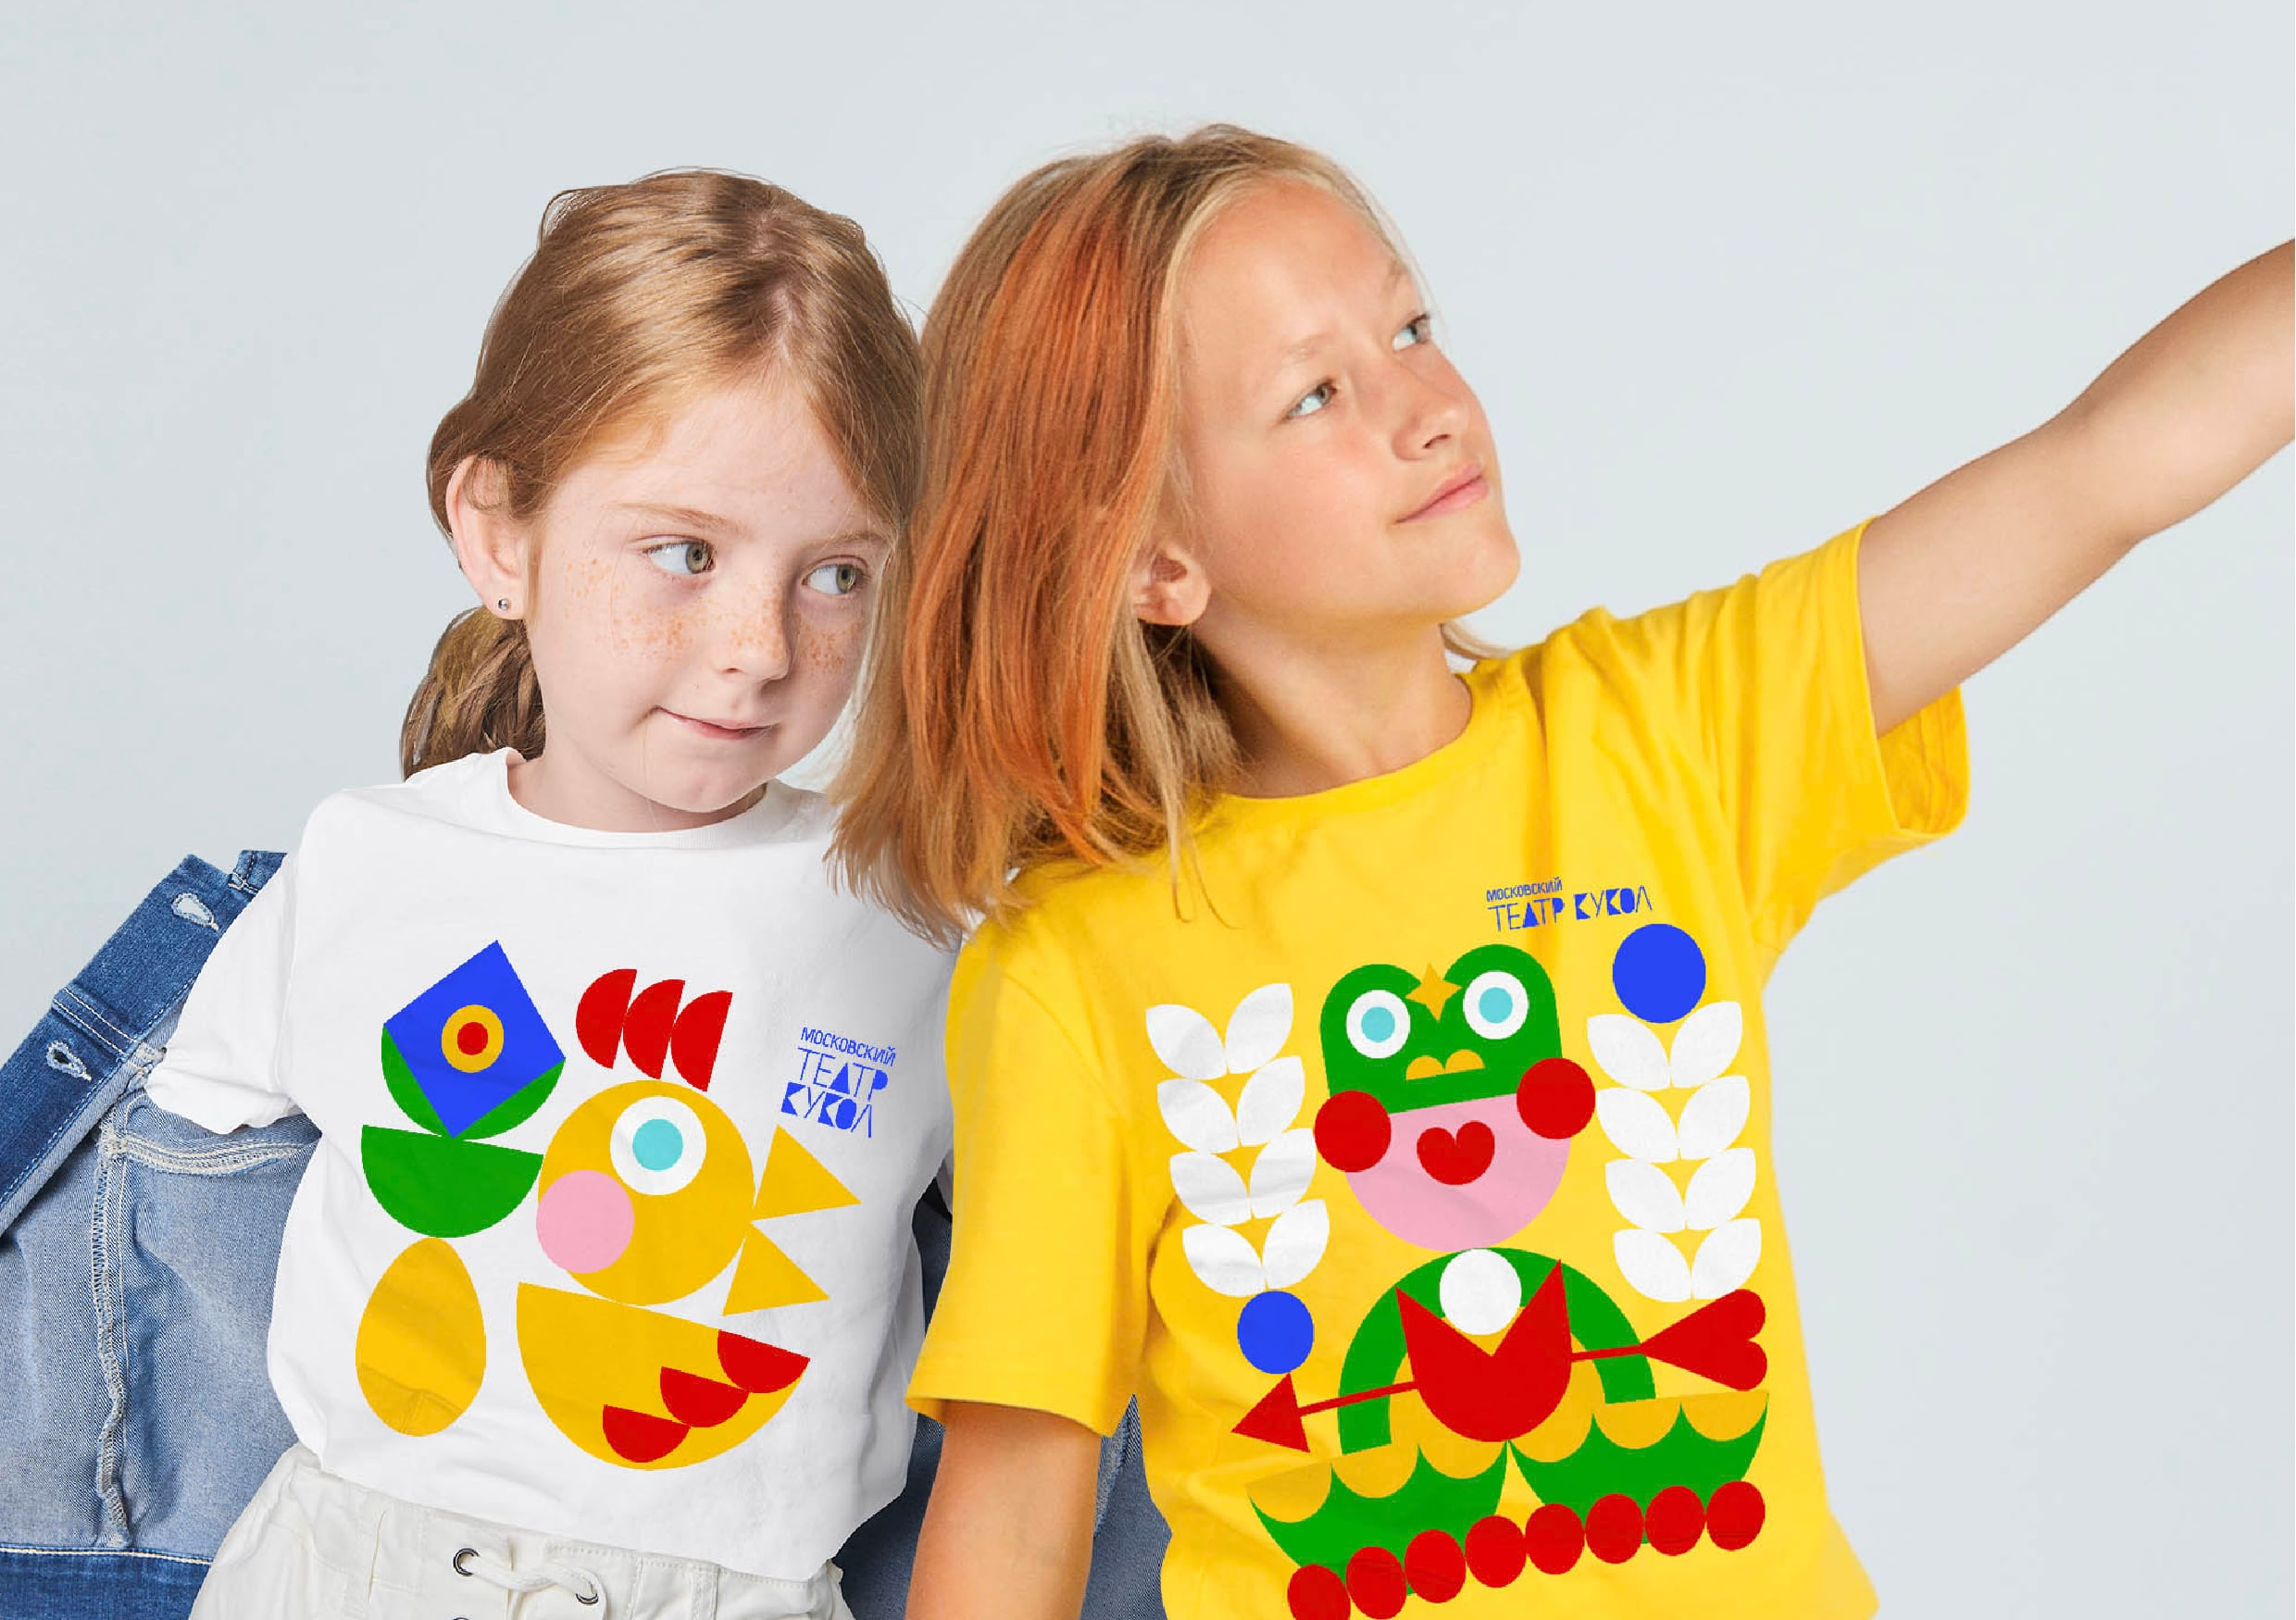 Student Repina Tatyana Creates Identity Concept for Moscow Puppet Theatre